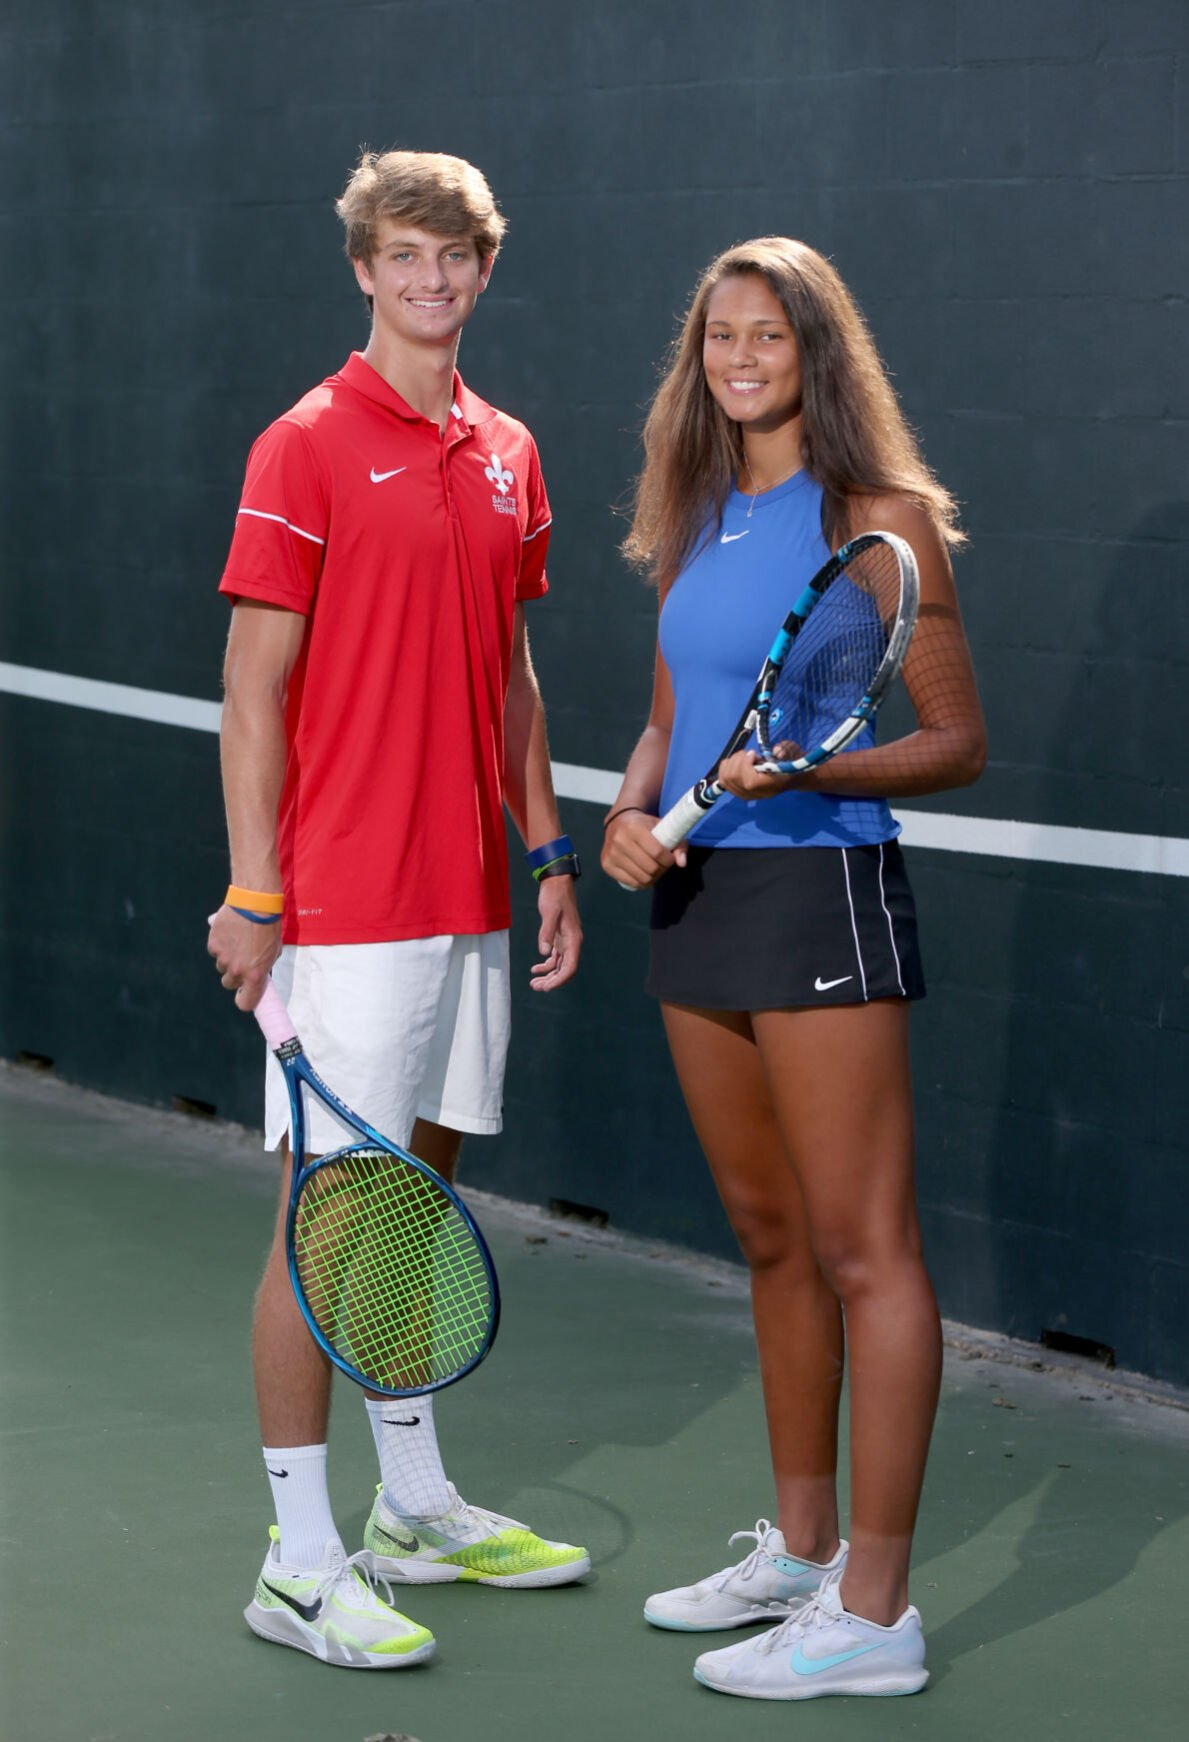 All-Metro tennis players of the year, Will Thompson and Olivia Wright